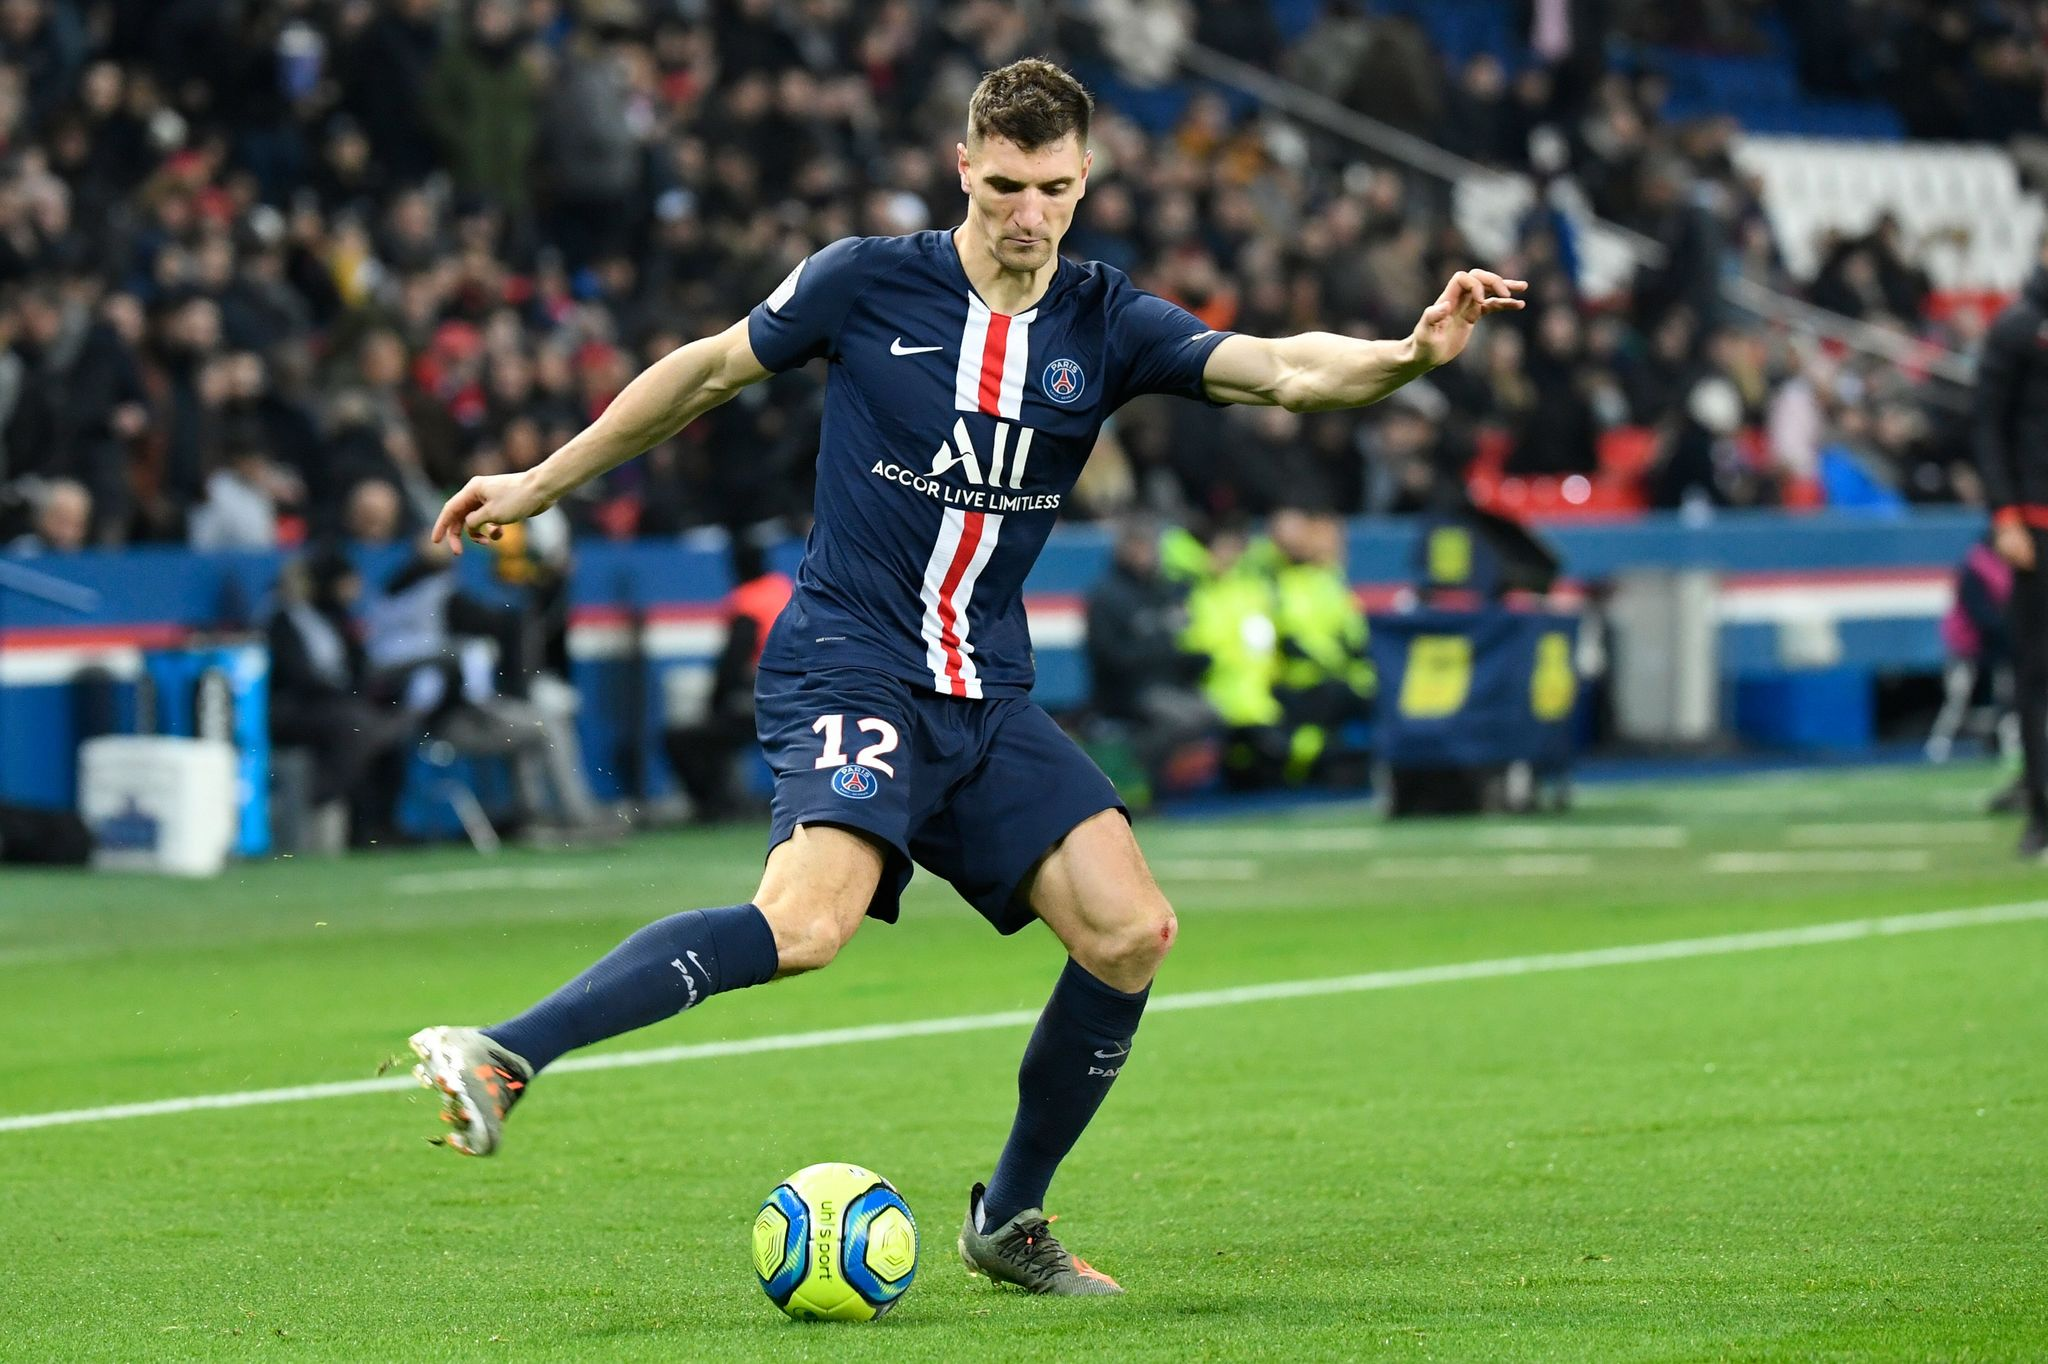 Paris Saint-Germains Belgian defender Thomas <HIT>Meunier</HIT> plays the ball during the French L1 football match between Paris Saint-Germain and AS Monaco at the Parc des Princes stadium in Paris on January 12, 2020. (Photo by Bertrand GUAY / AFP)